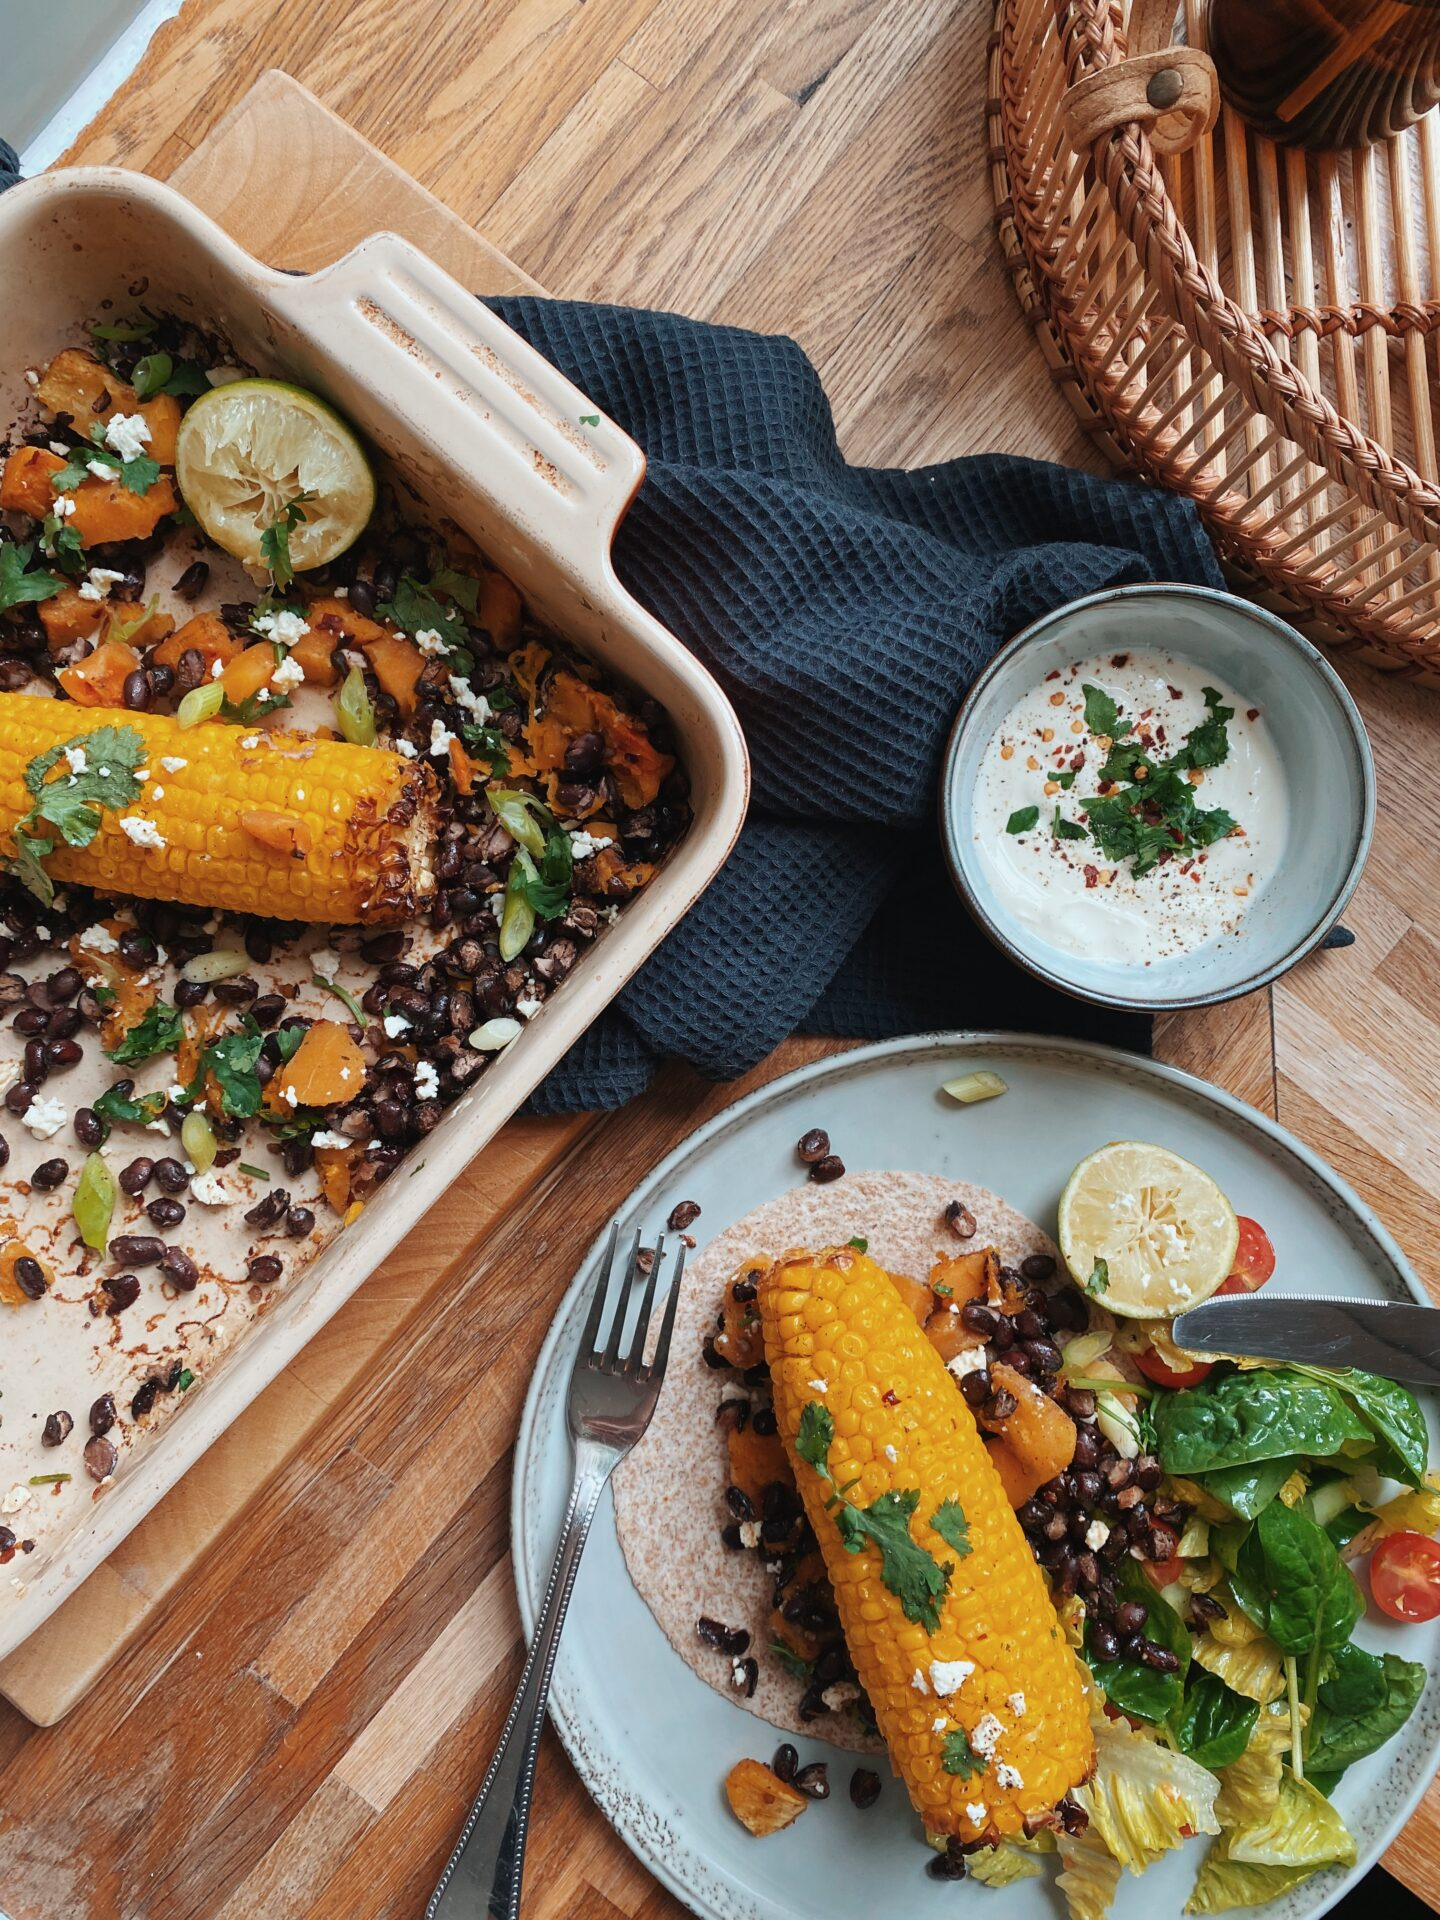 One Tin Mexican Sweetcorn & Black Beans